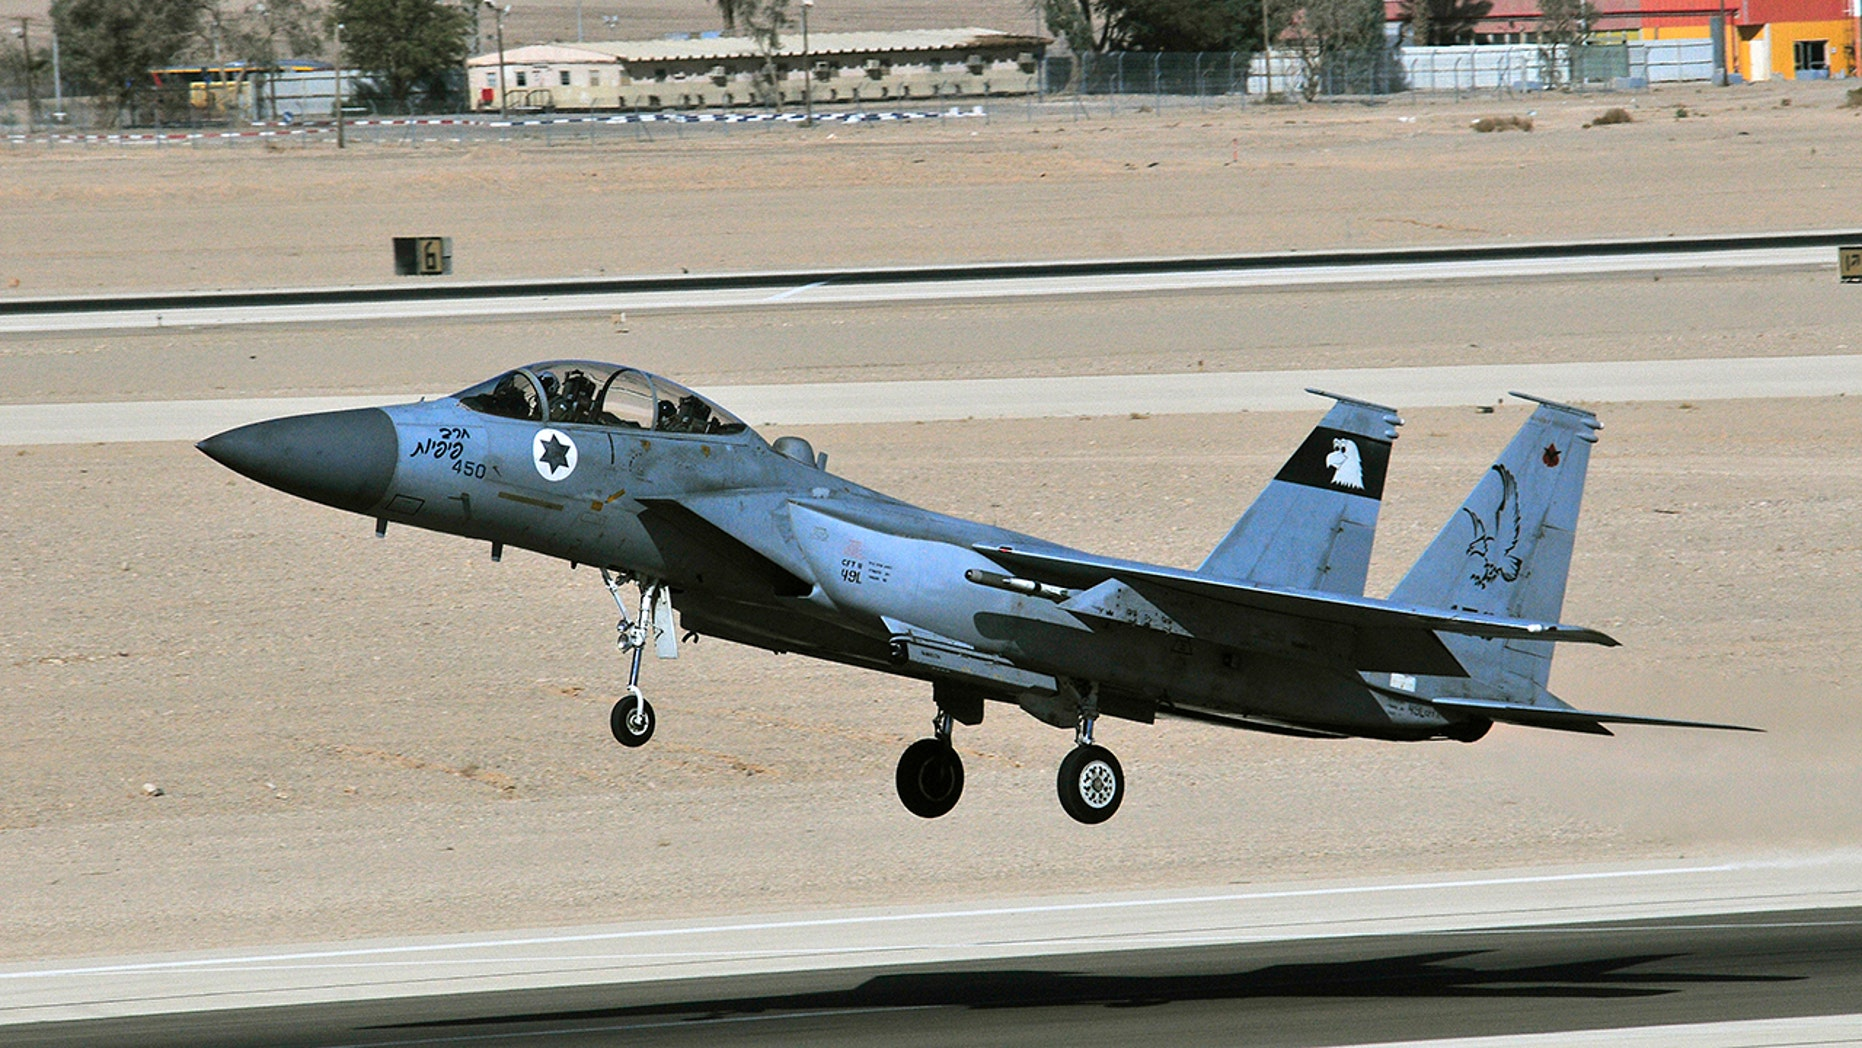 Israel's entire F-15 fleet has been grounded after a cockpit canopy detached from an aircraft last week.